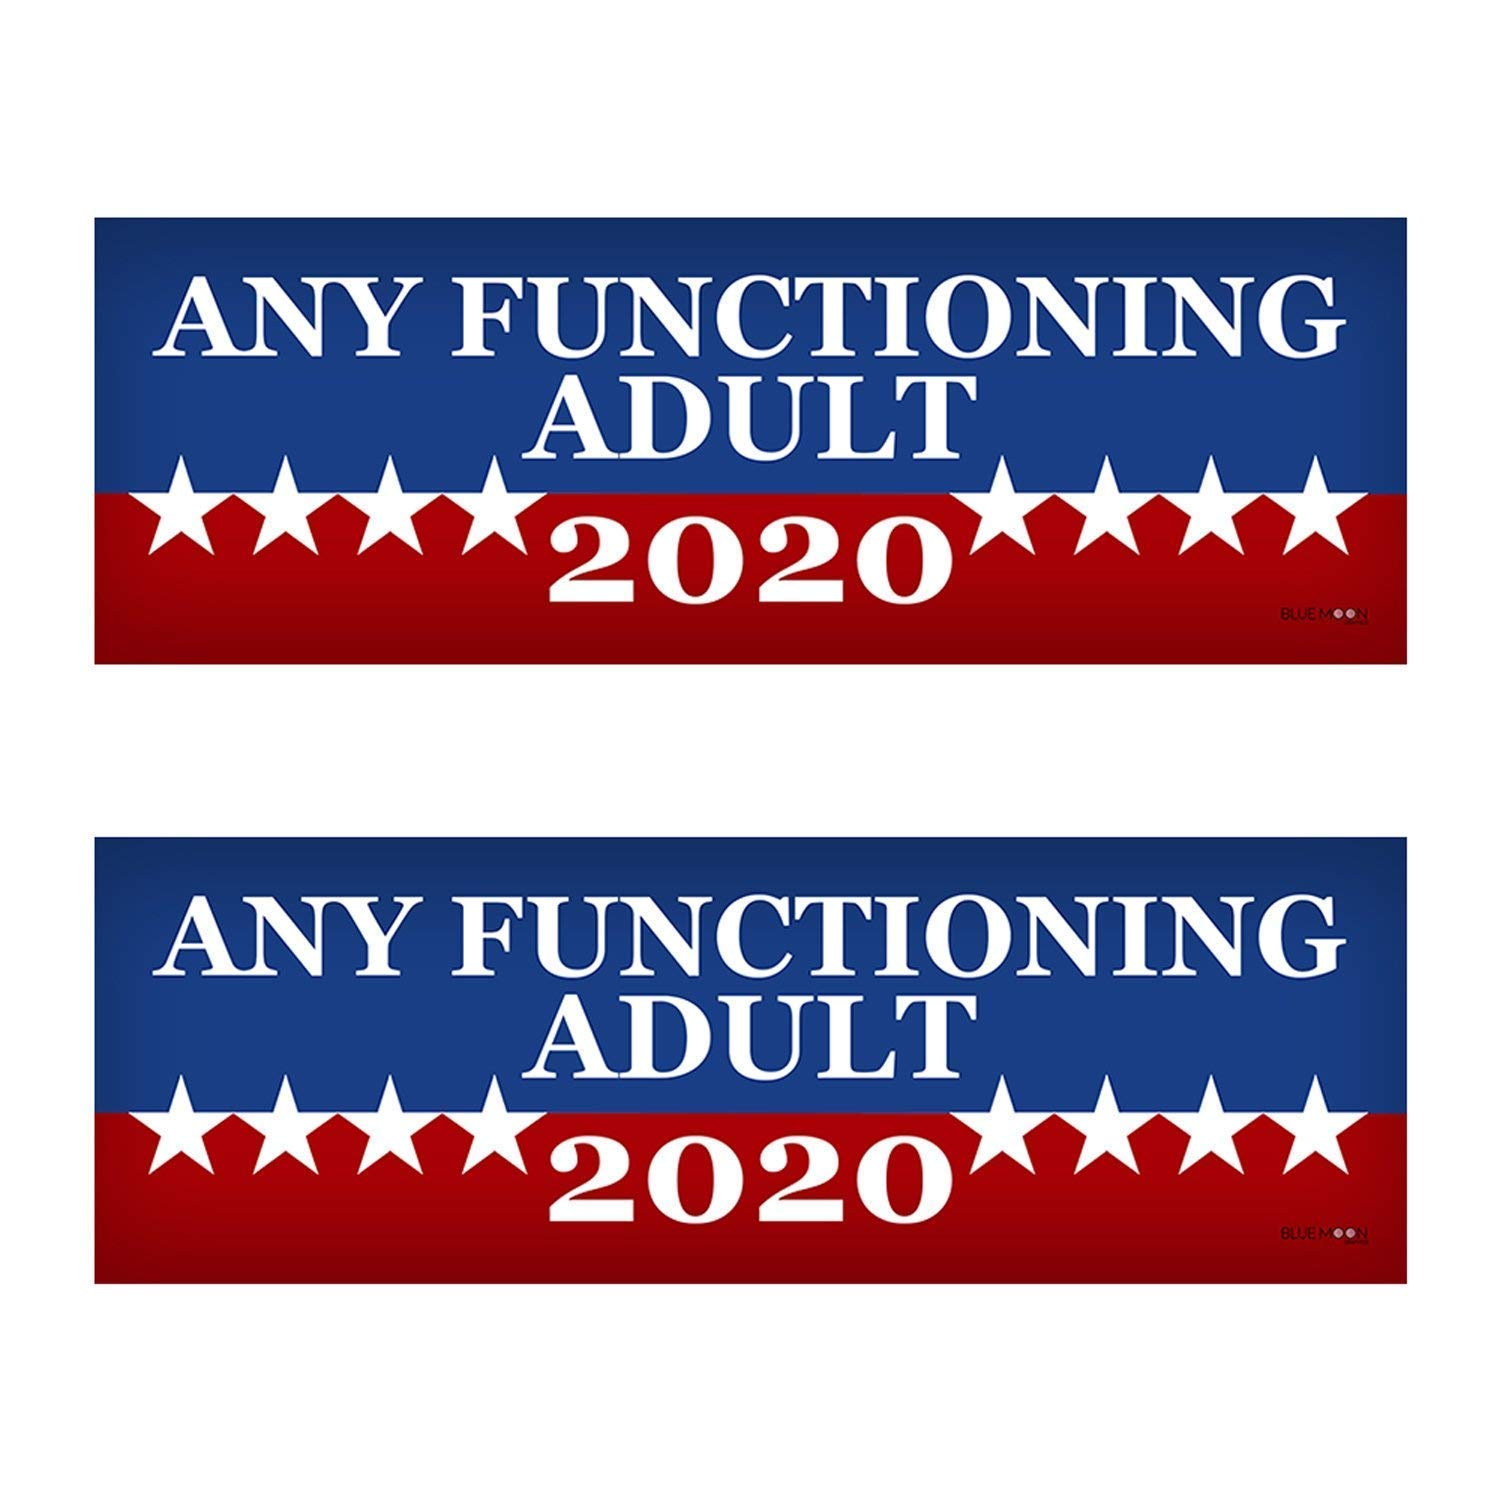 Any functioning adult 2020 funny bumper sticker 3 x 9 car truck vinyl decal political presidential election made in usa sports outdoors